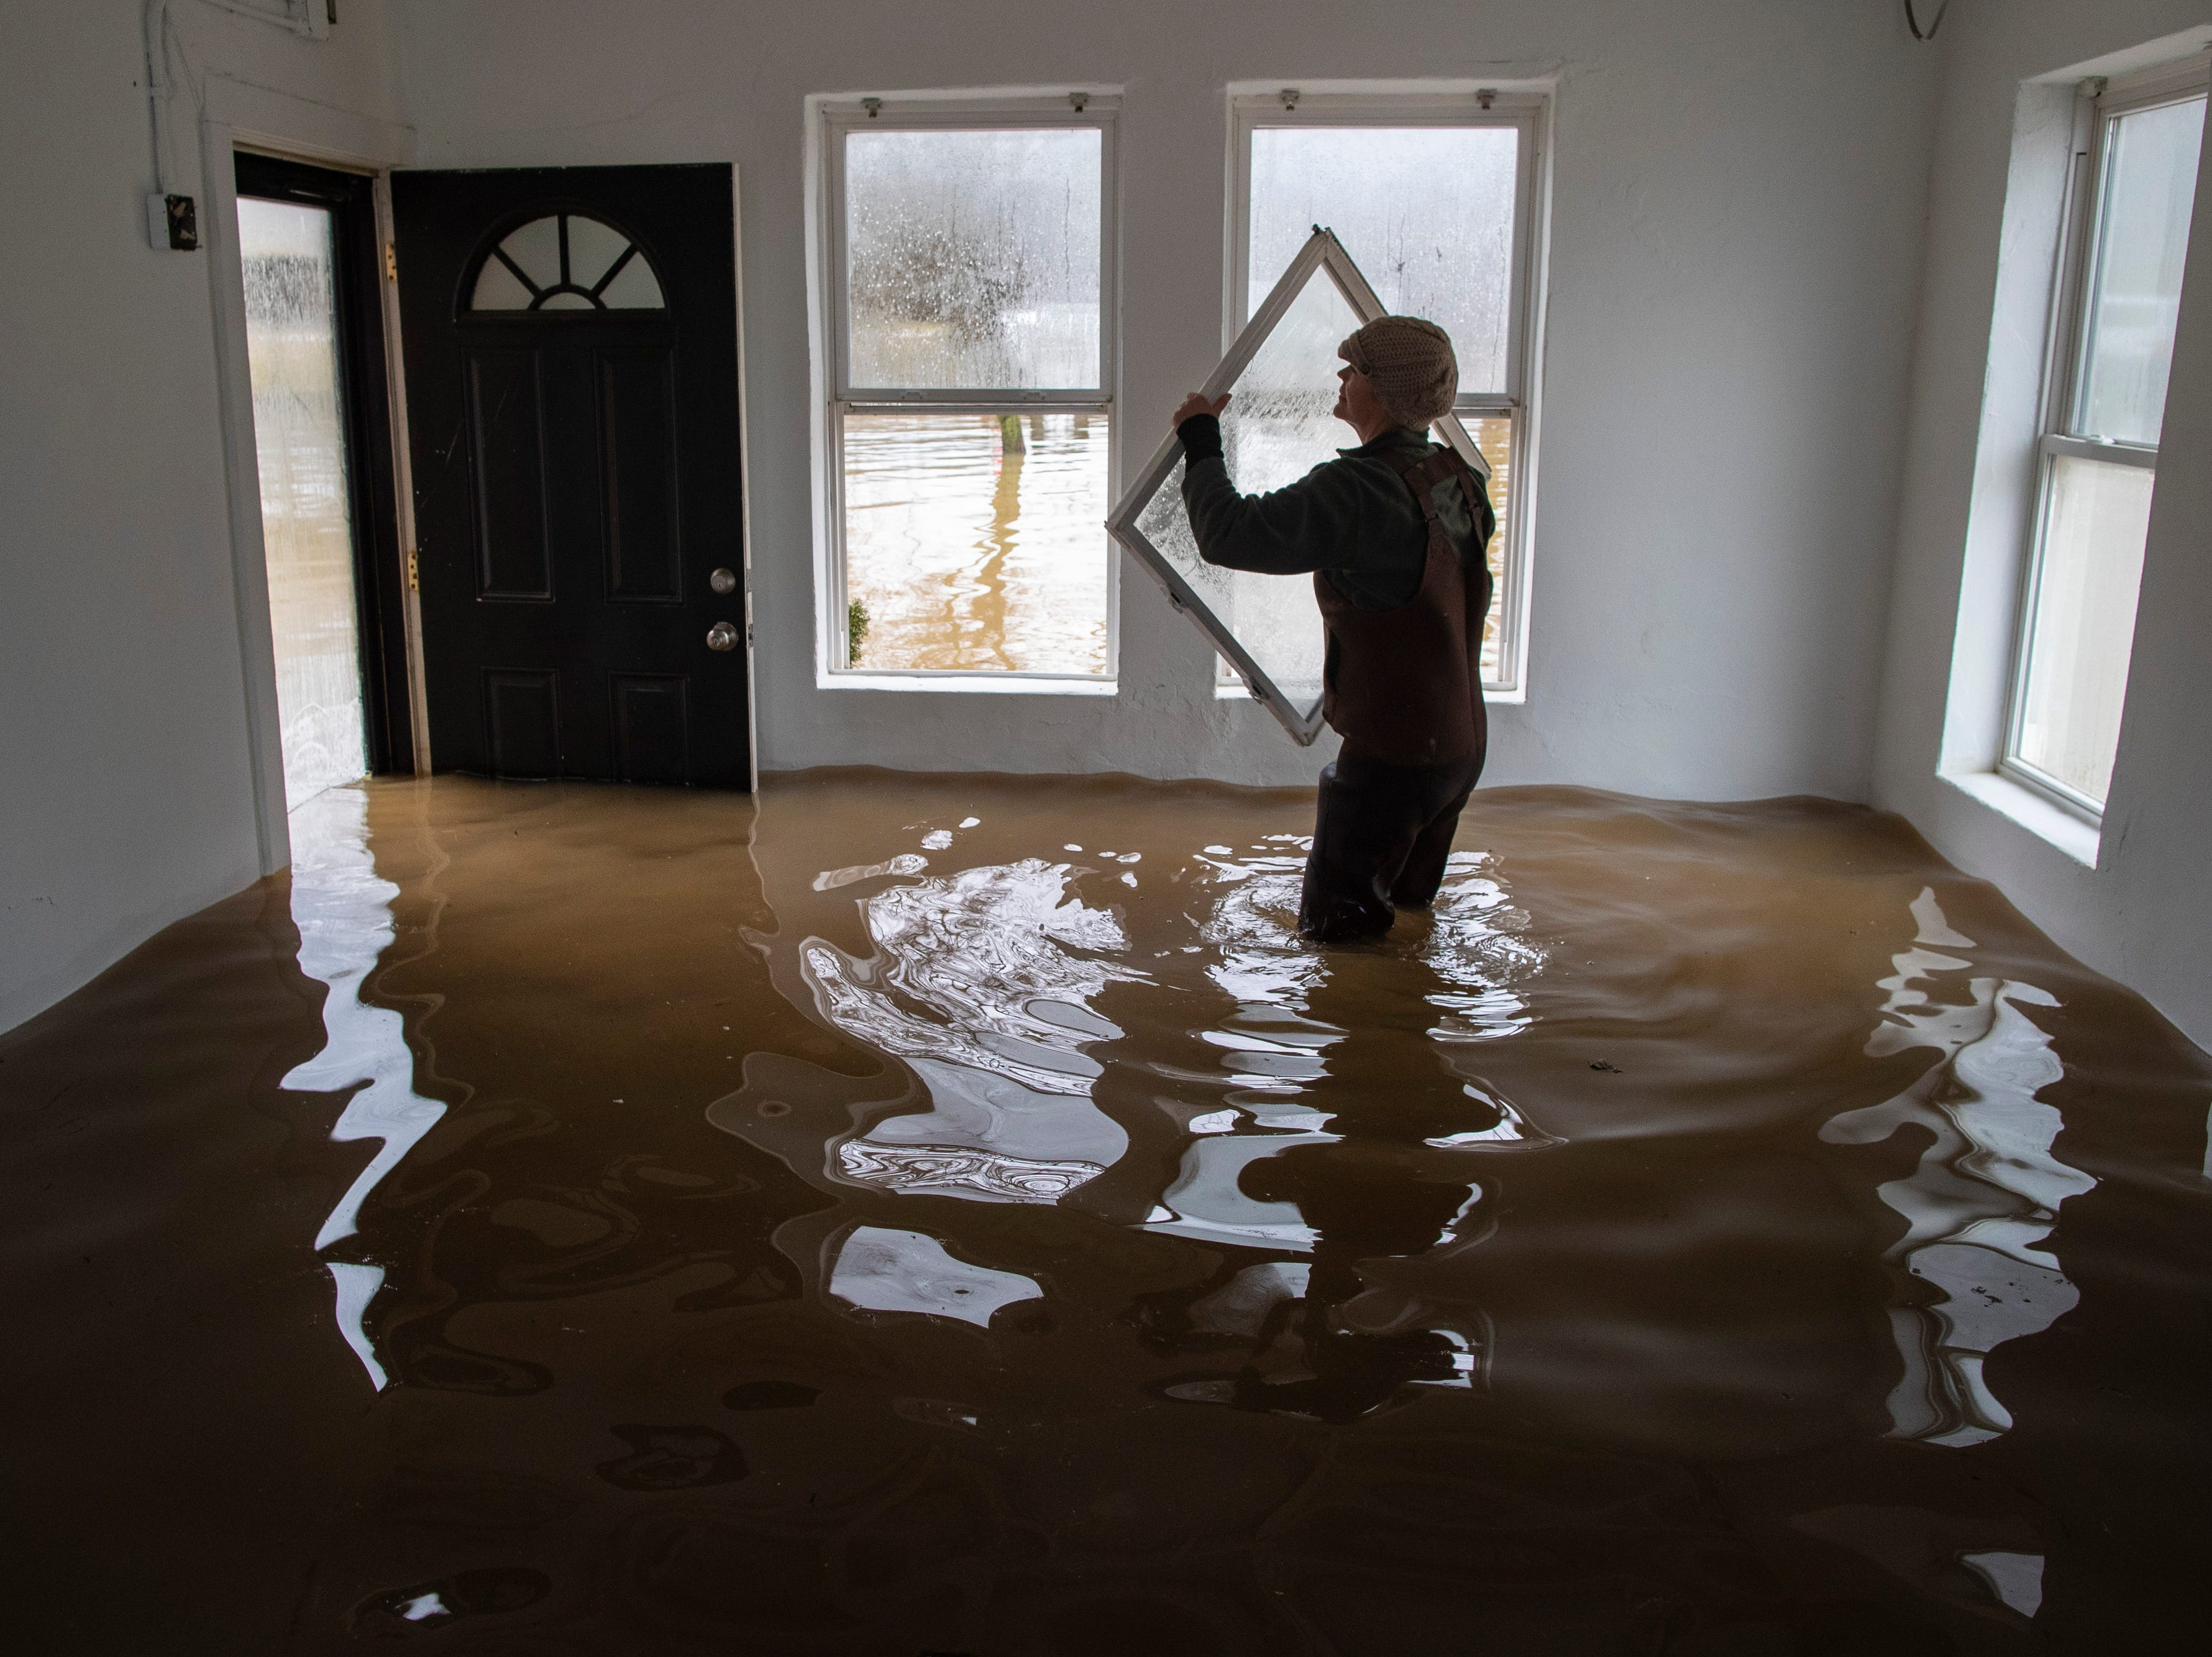 Angelyn Rudd pulls on her waders as she prepares to do some flood preparation at her home on River Road as high waters on the Ohio River rose Tuesday. Feb. 12, 2019